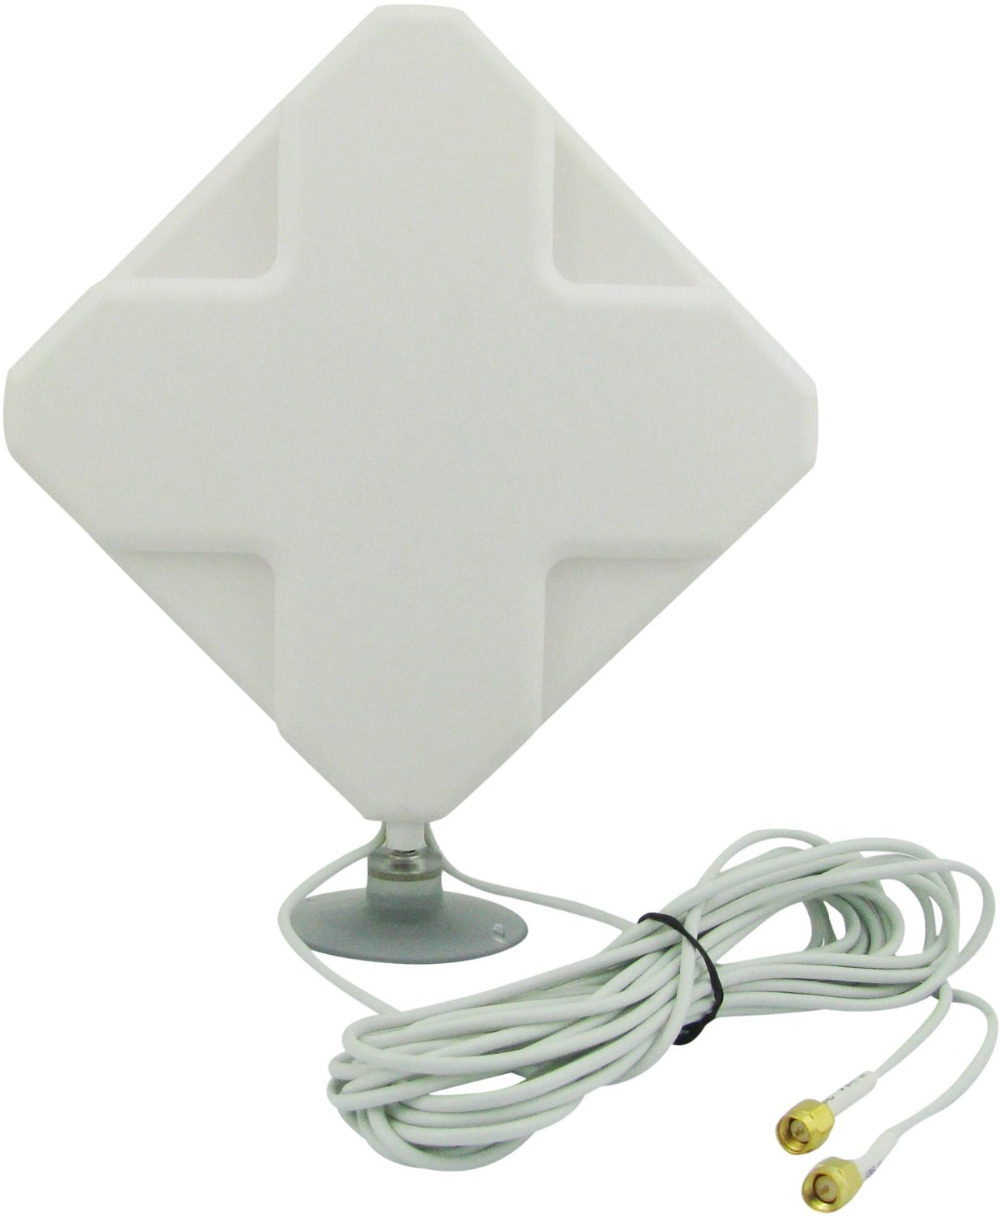 35dBi 3G/4G LTE Long Range Signal Booster Antenna For Mible Hot Spot Wireless Broadband Routers Wifi Devices(SMA Connector)